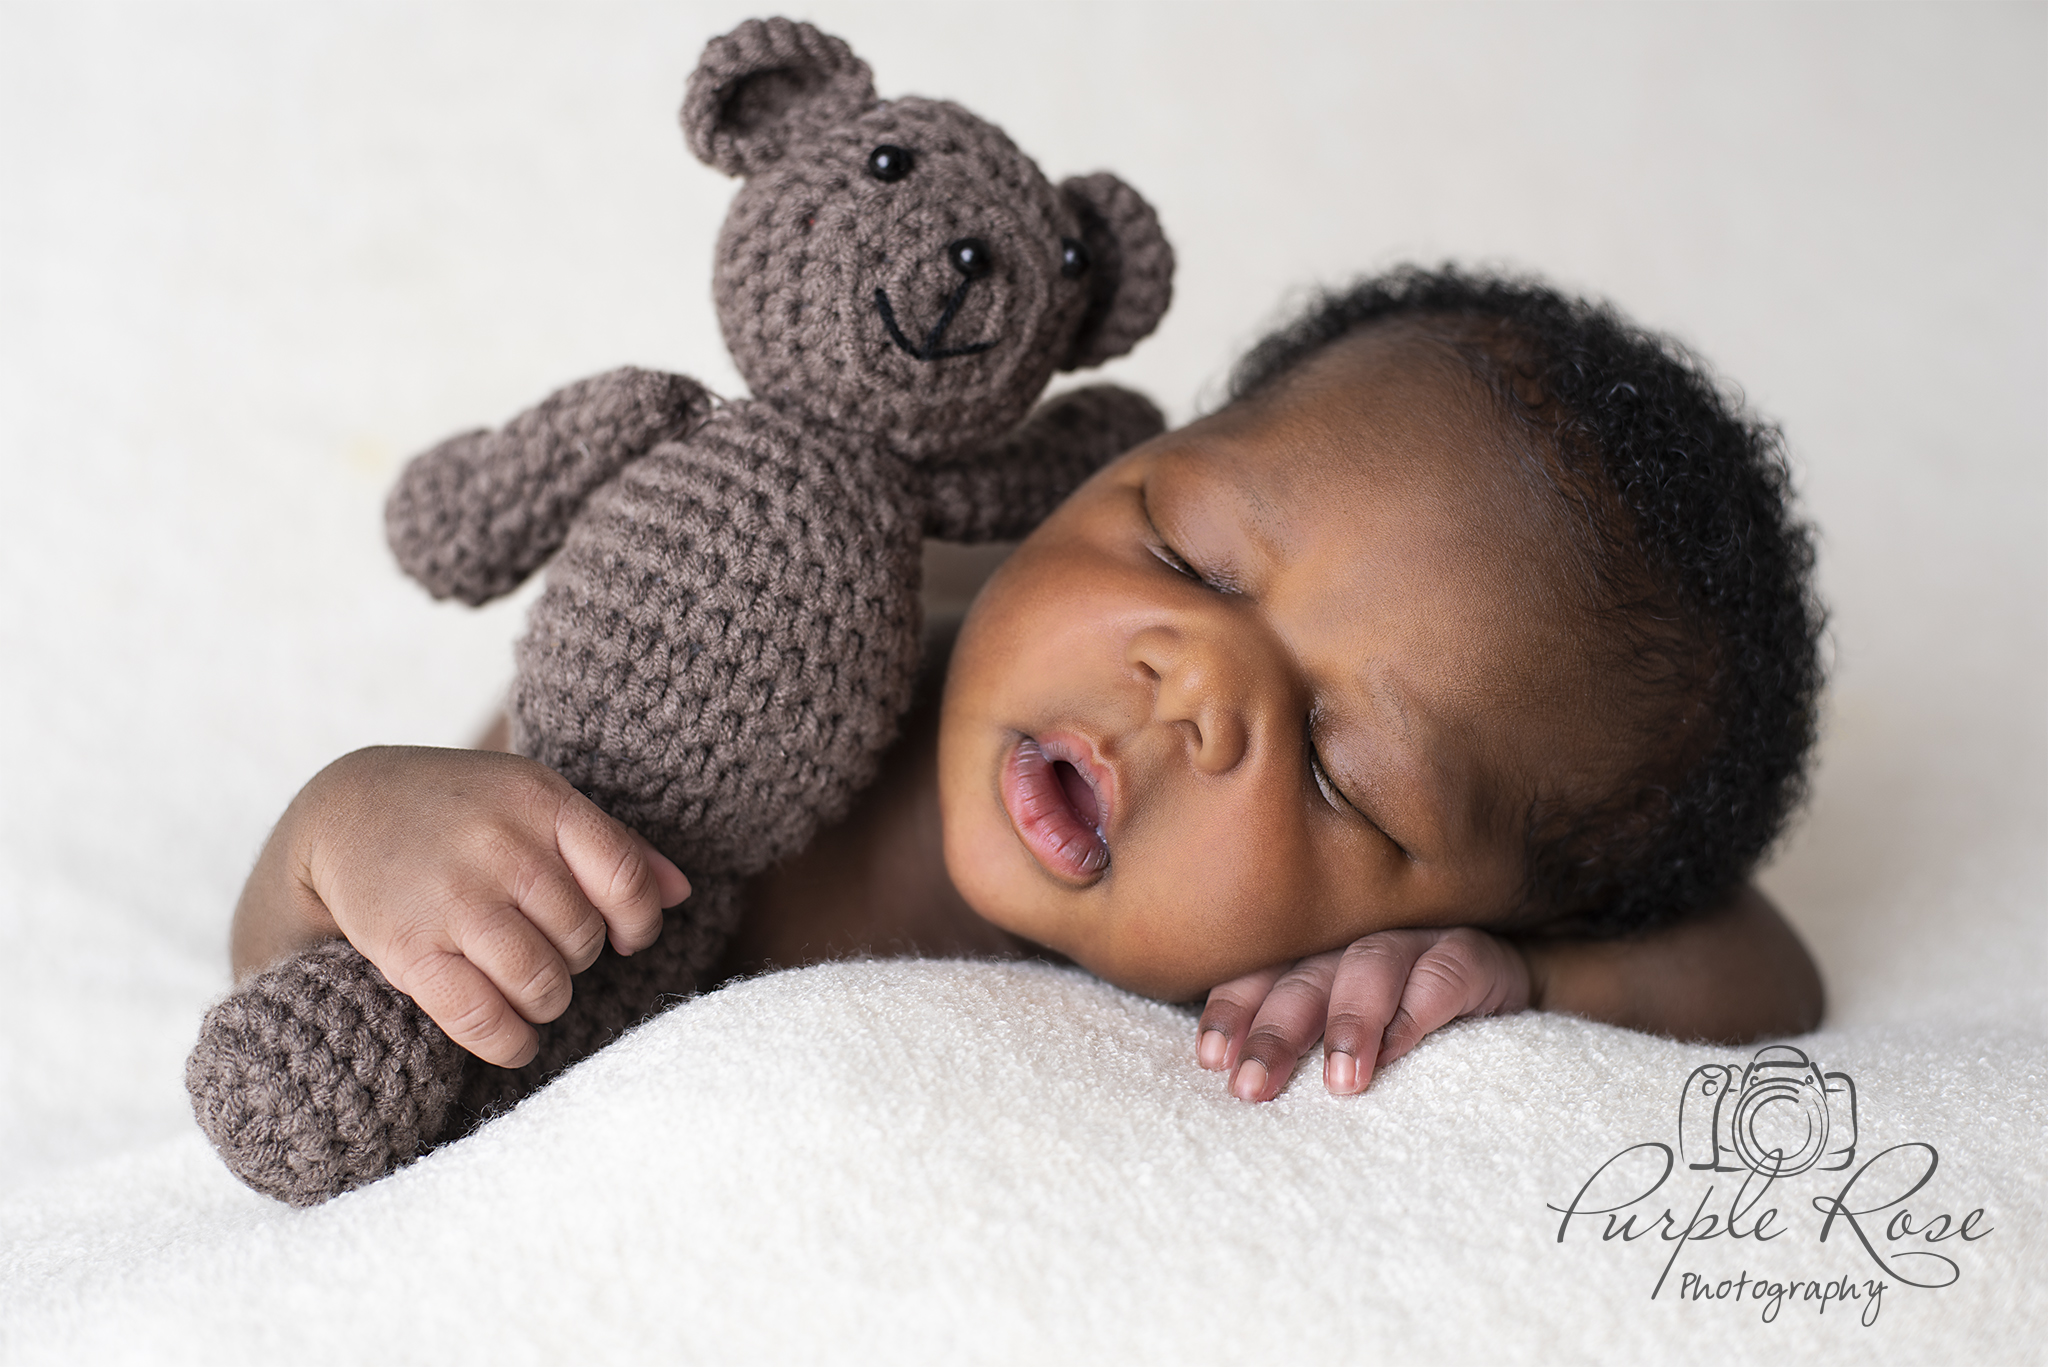 Baby sleeping while holding a teddy